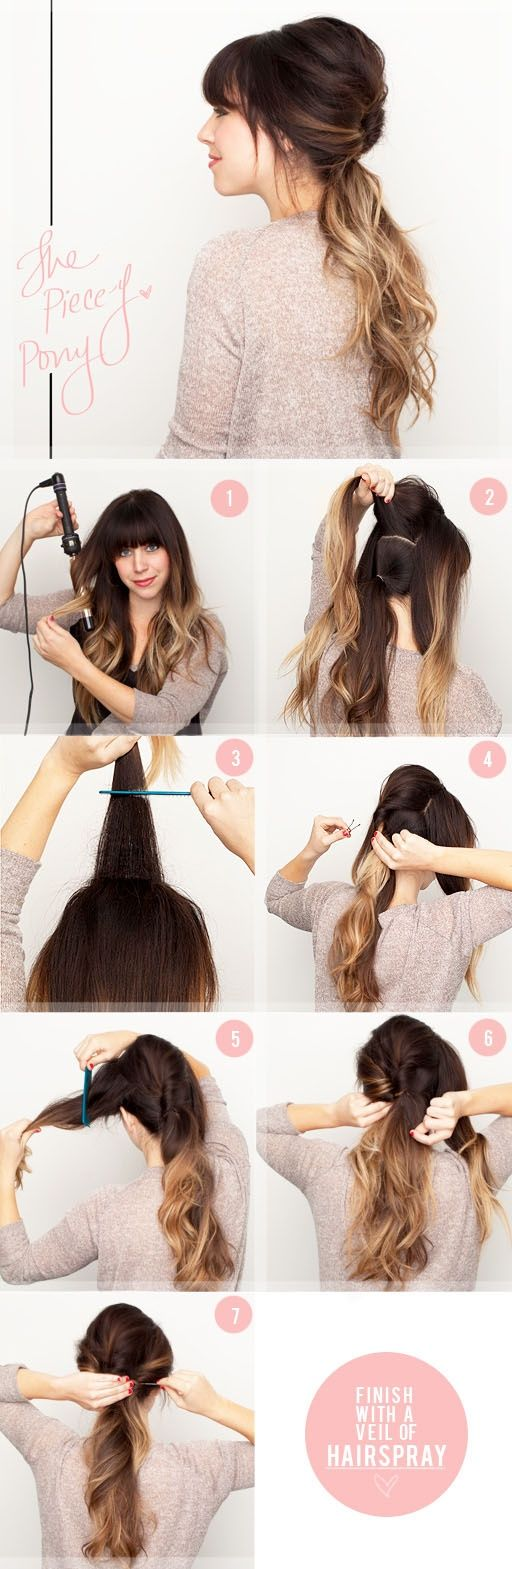 42 best wedding hairstyle images on pinterest | hairstyles, make